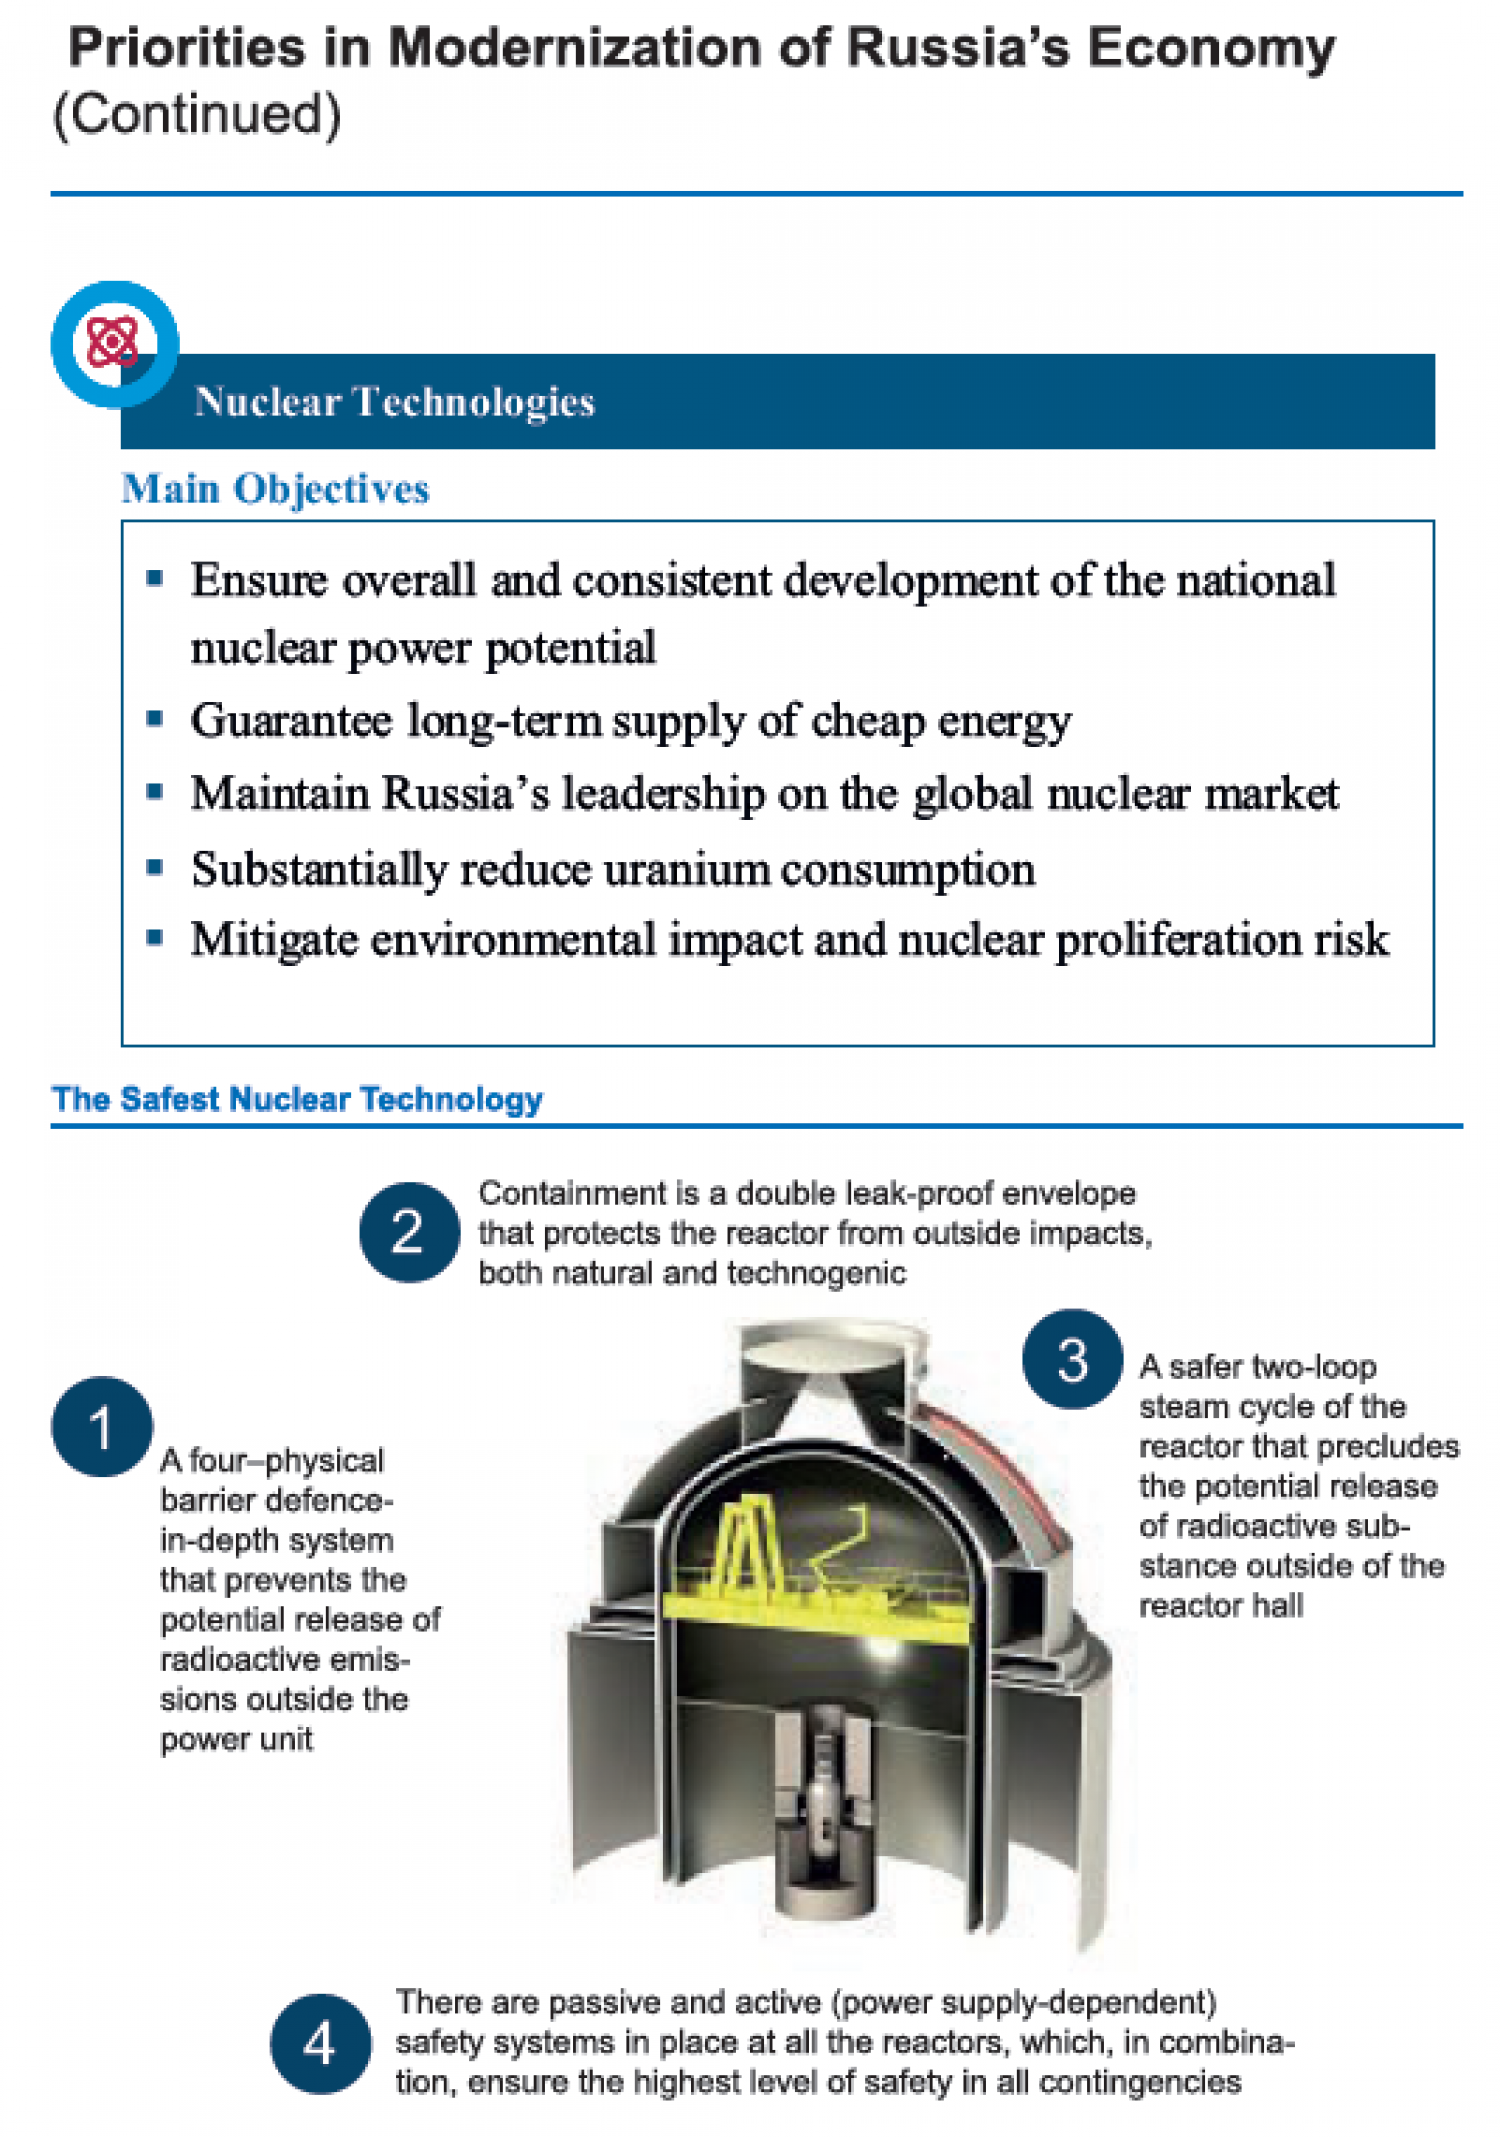 Russian Federation ( NUCLEAR TECHNOLOGIES) : Priorities in Modernization of Russia's Economy Infographic